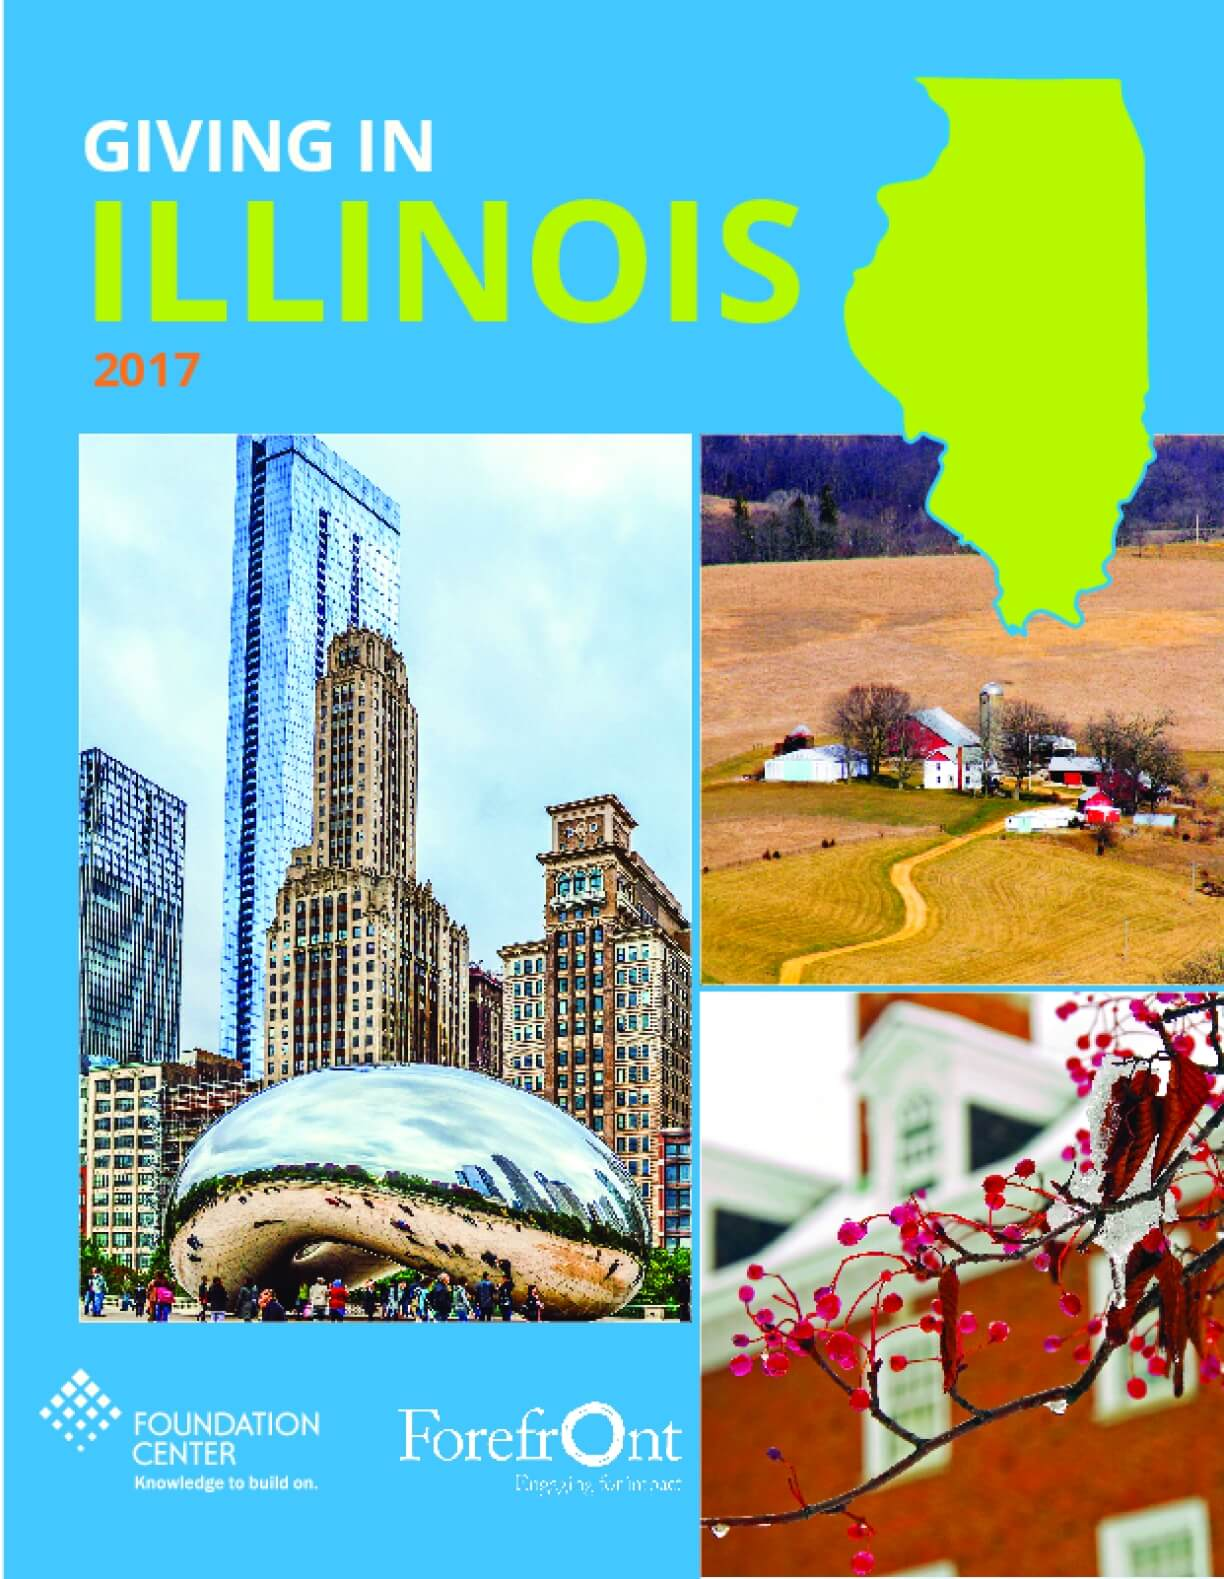 Giving in Illinois 2017